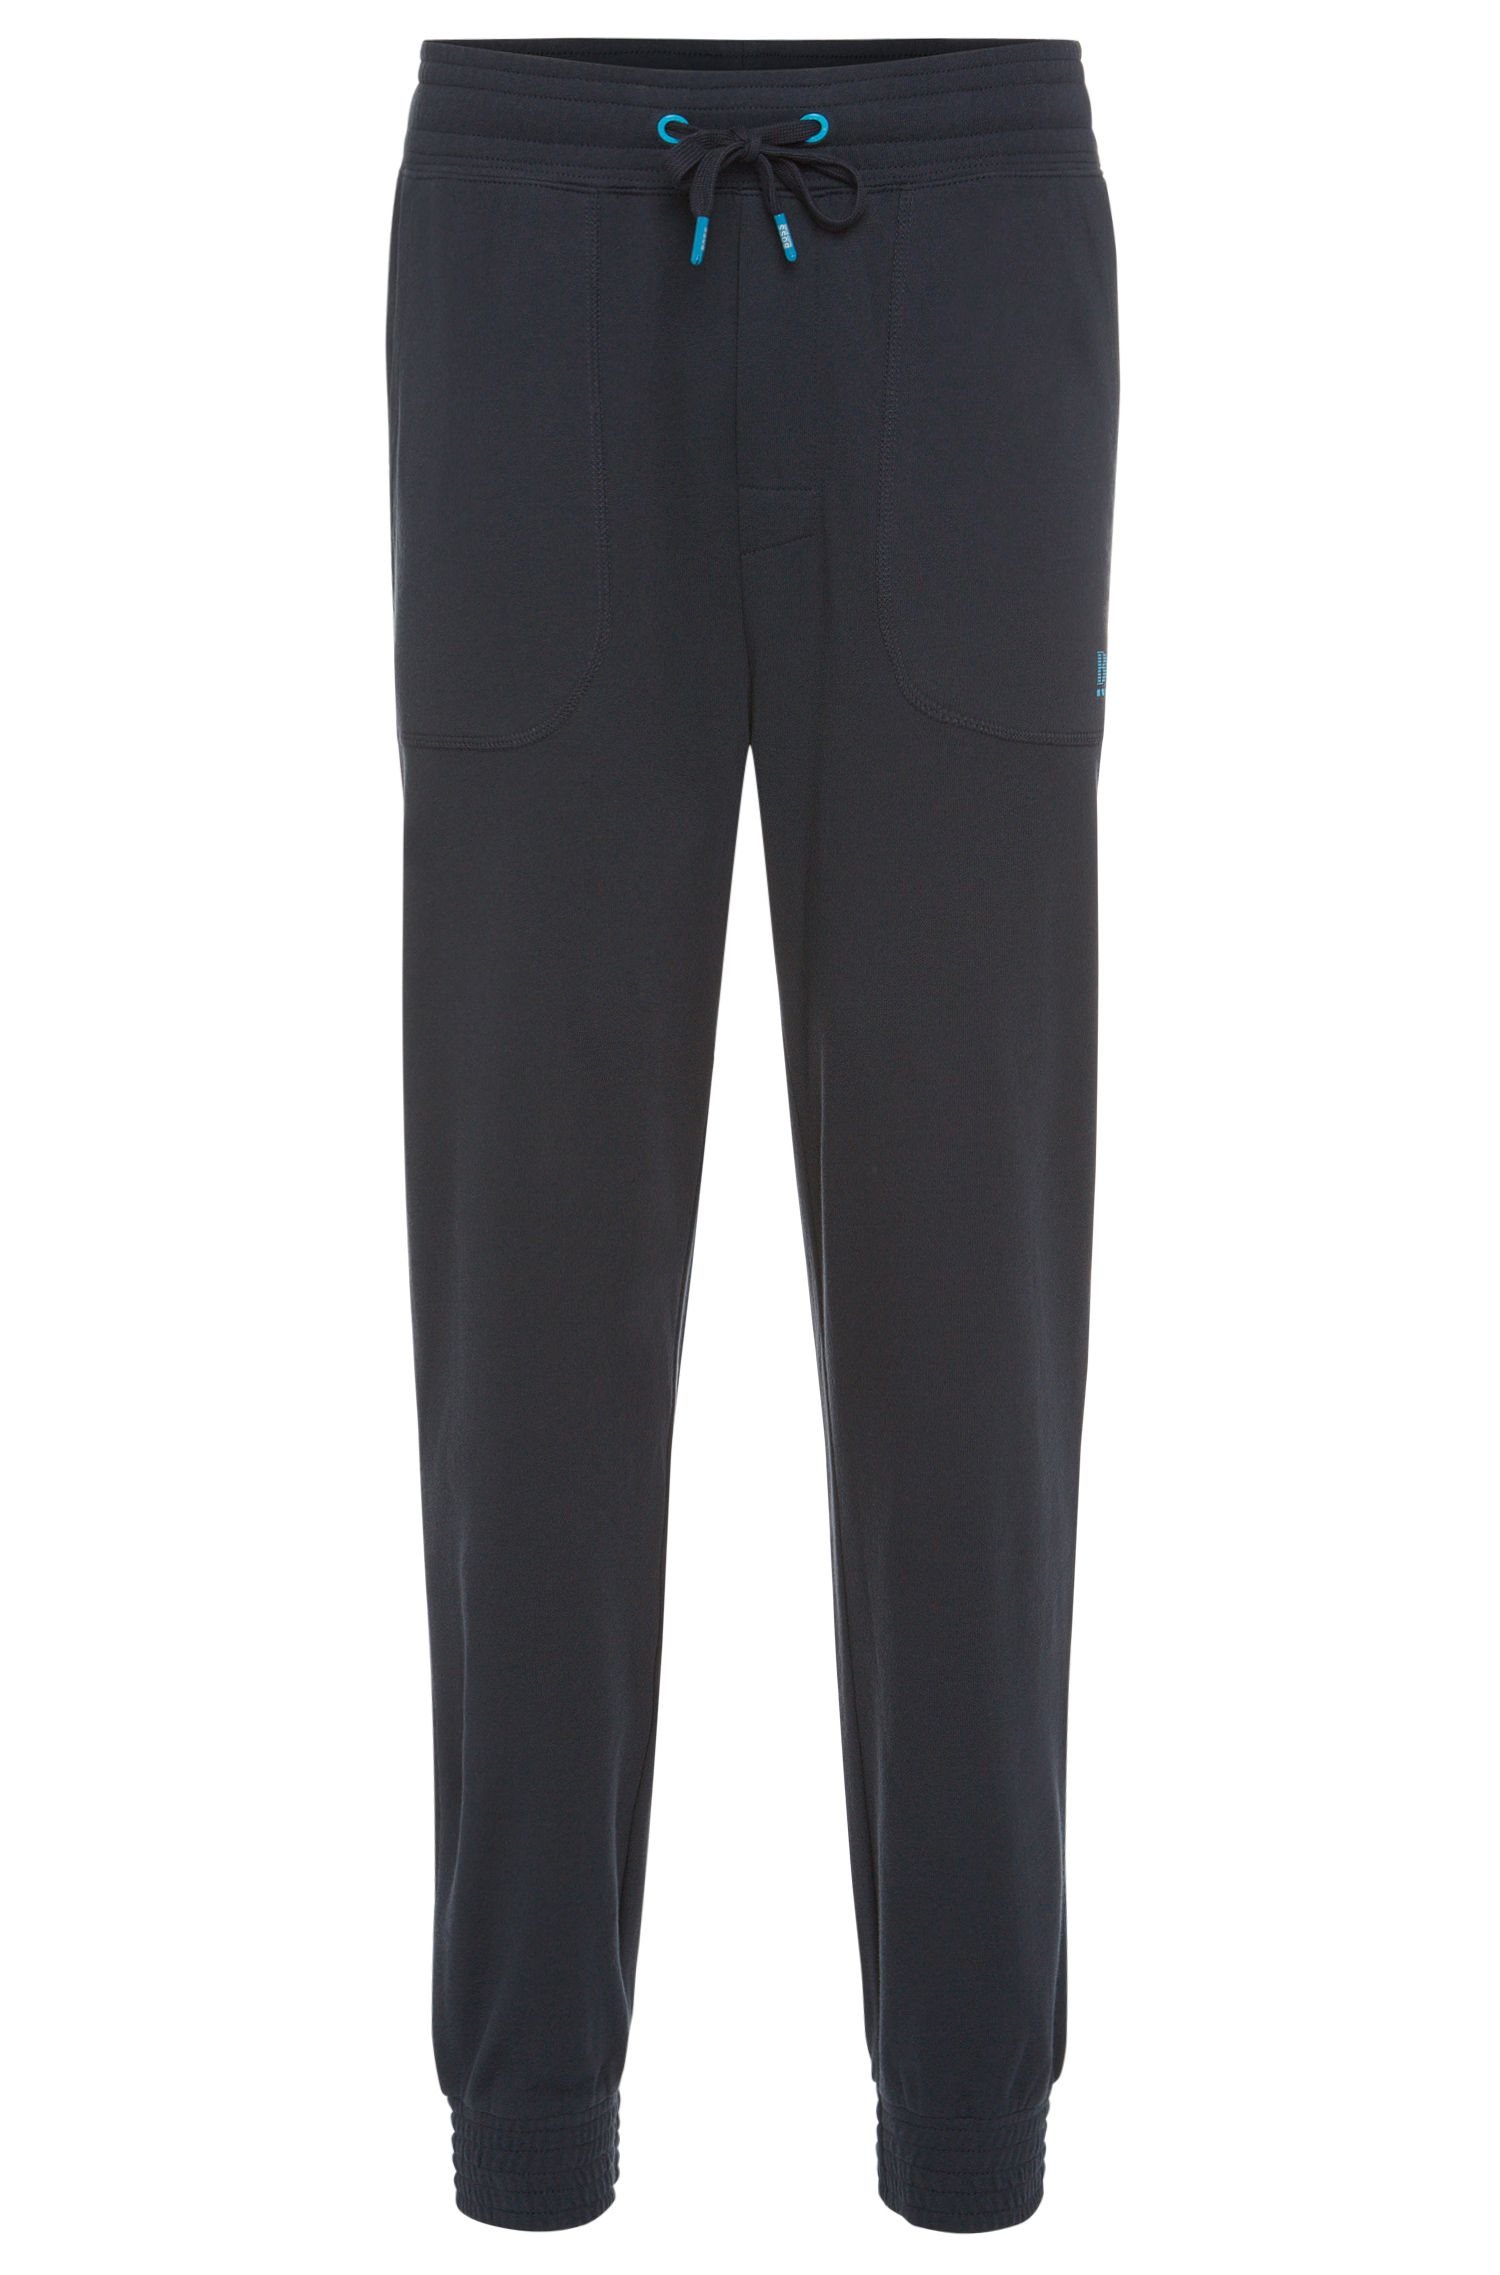 Pantalon sweat en coton avec détails contrastants : « Long Pant Cuffs »